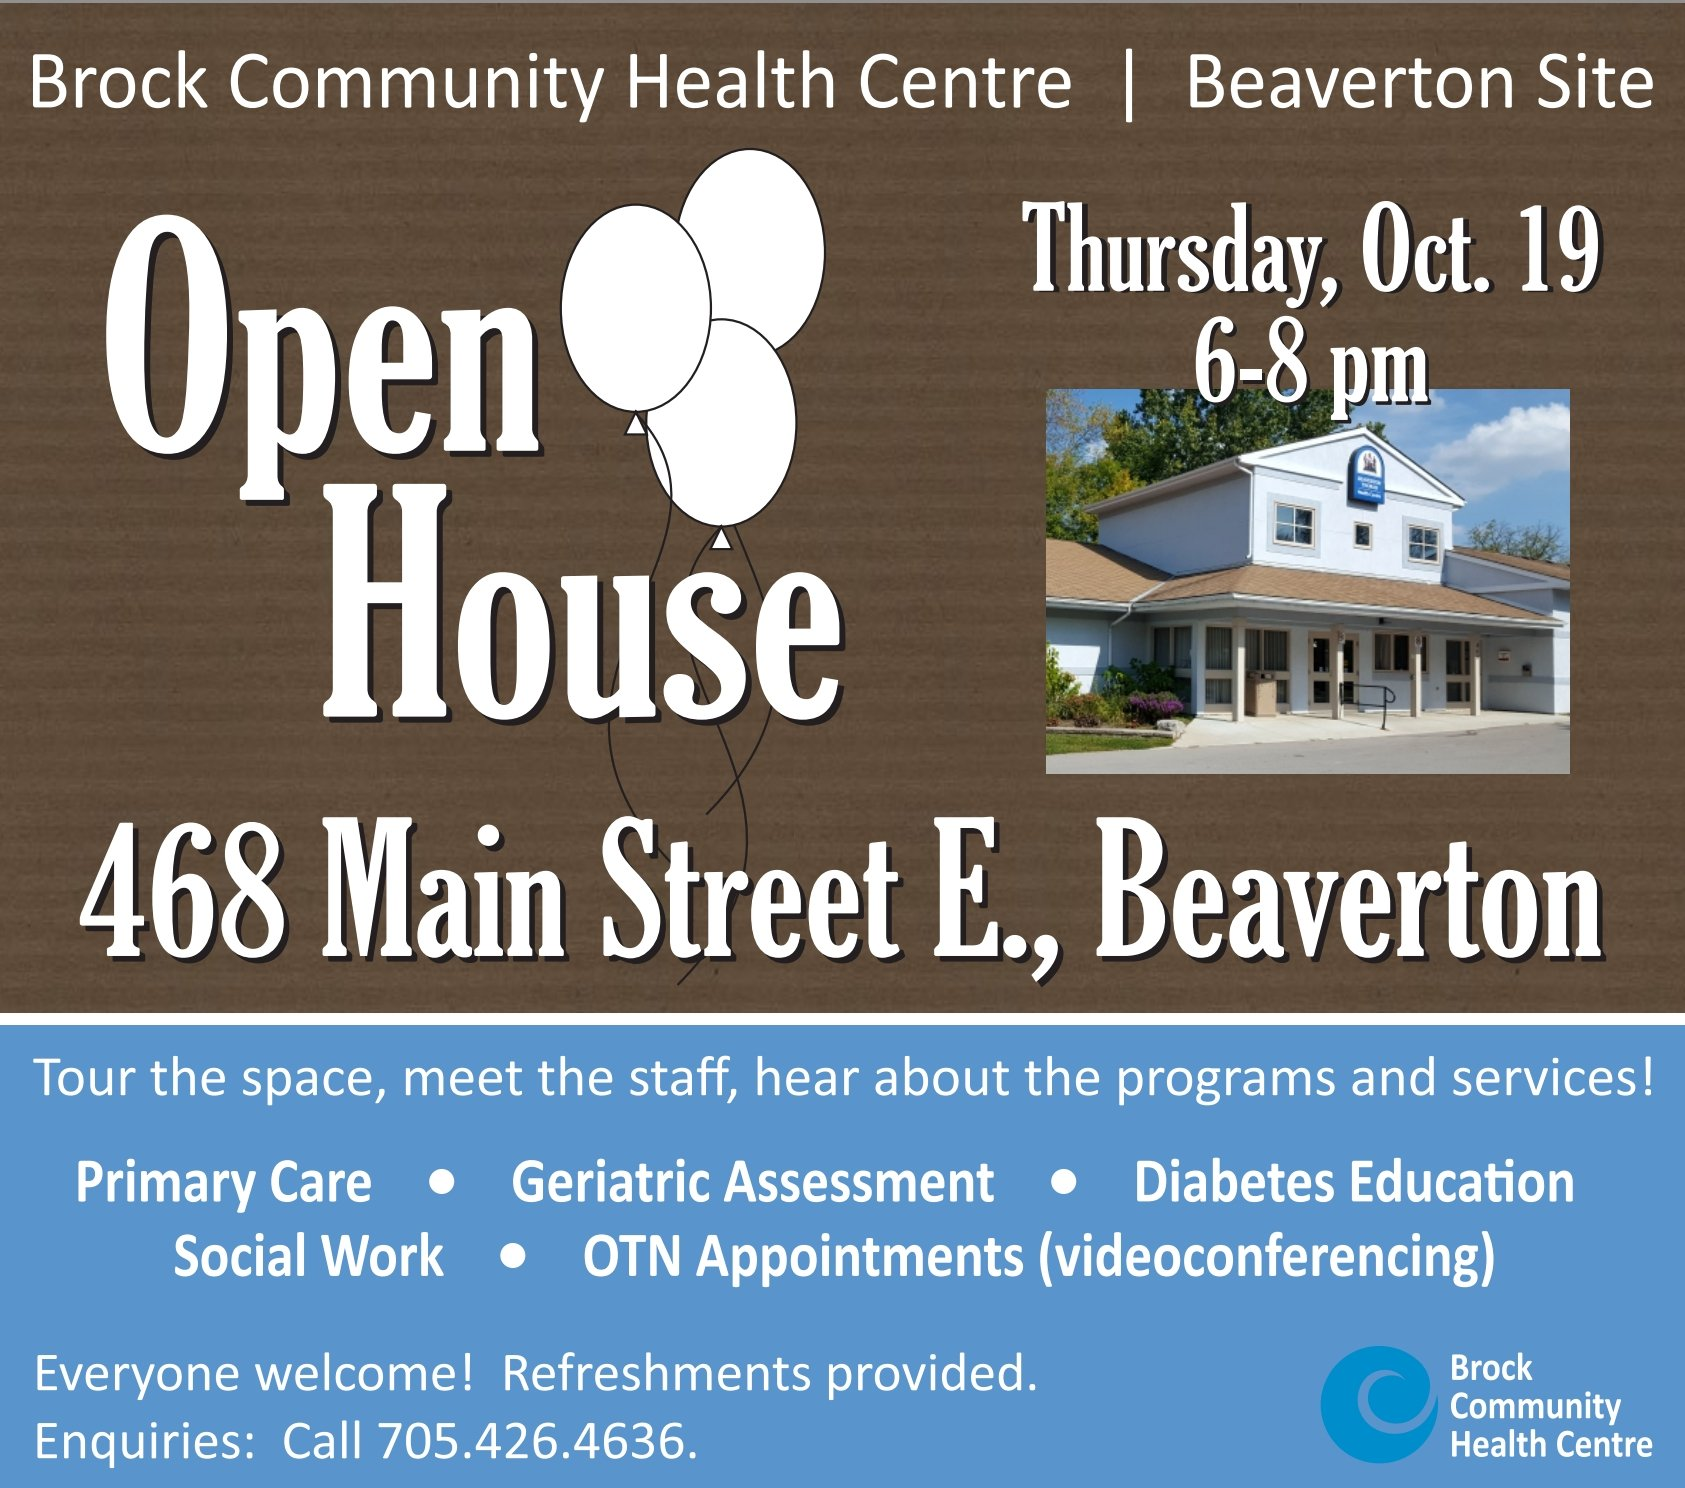 Residents invited to Brock Community Health Centre open house